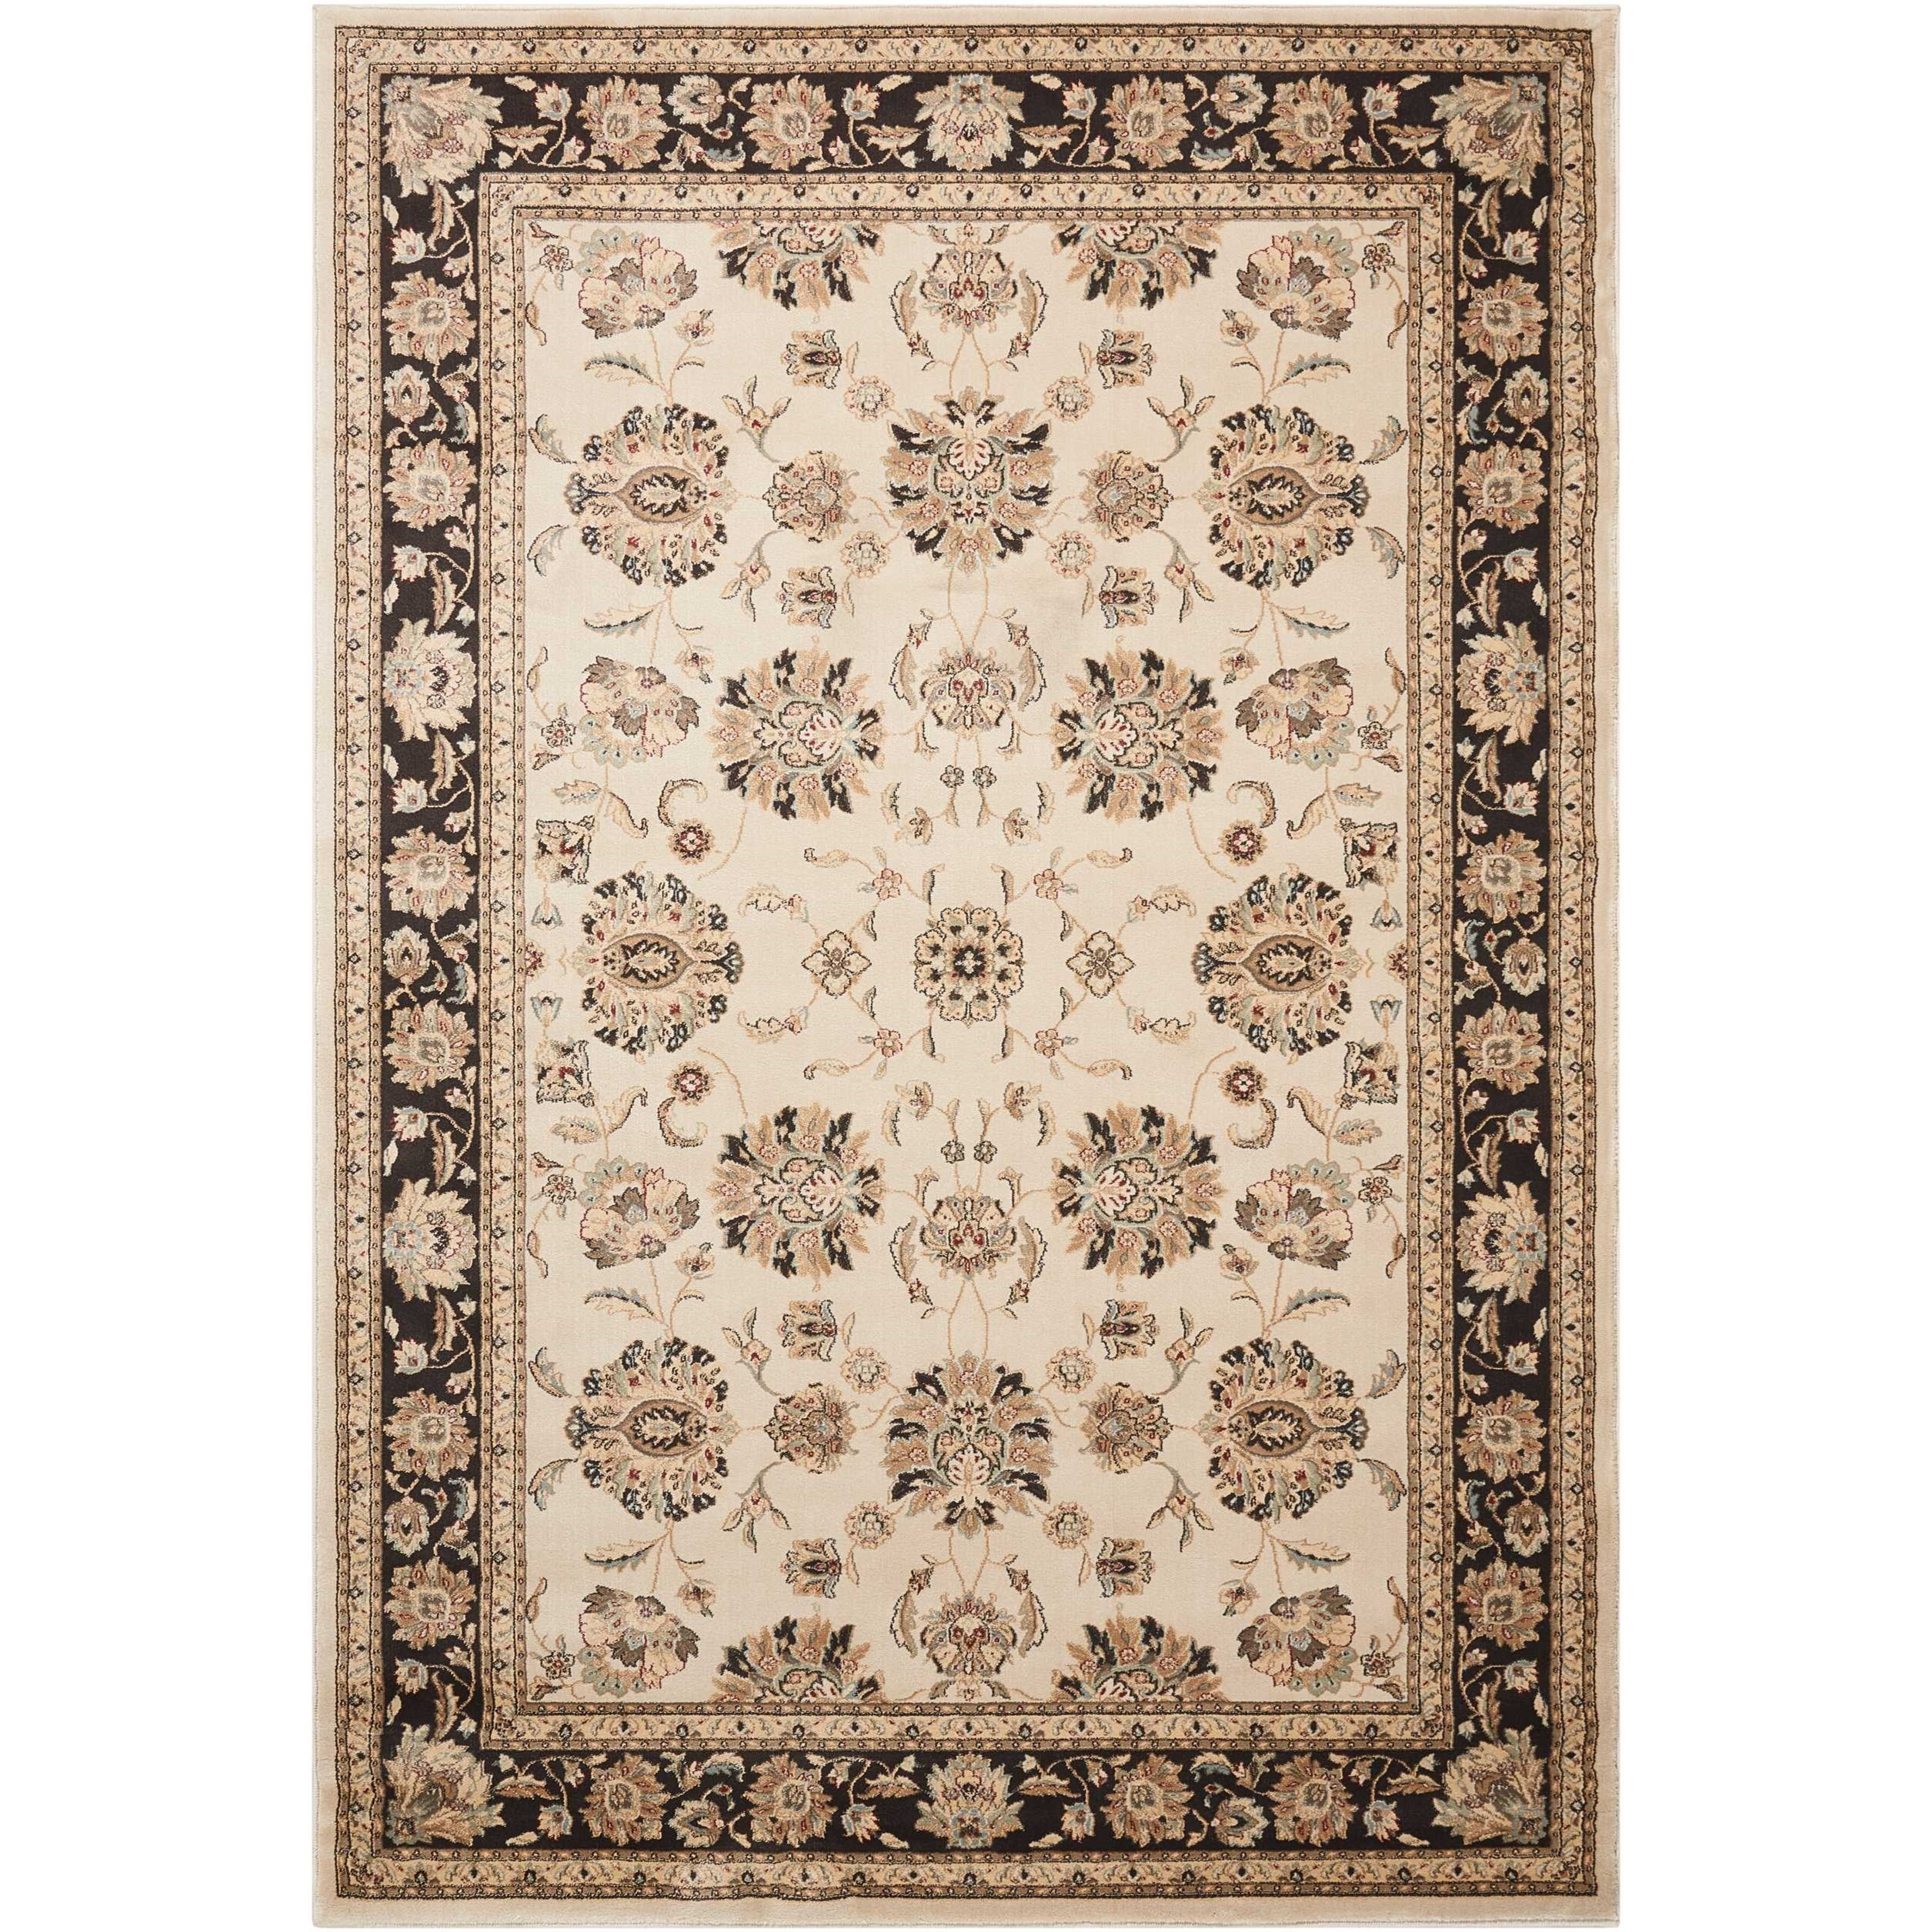 "Ararat 5'3"" x 7'4"" Iv/Grey Rectangle Rug by Nourison at Sprintz Furniture"